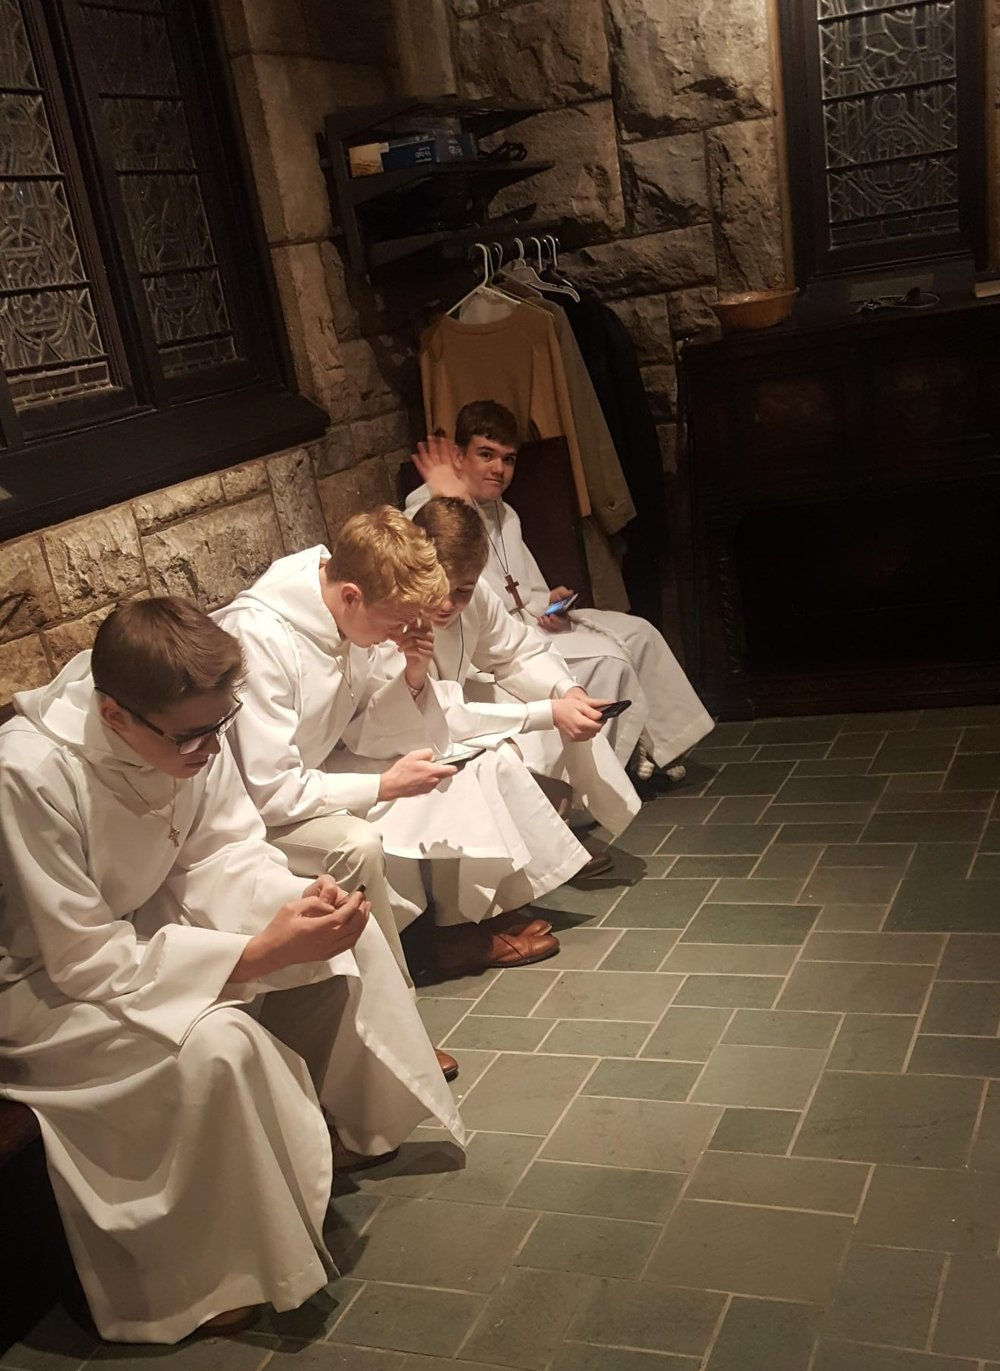 Acolytes in deep meditation…